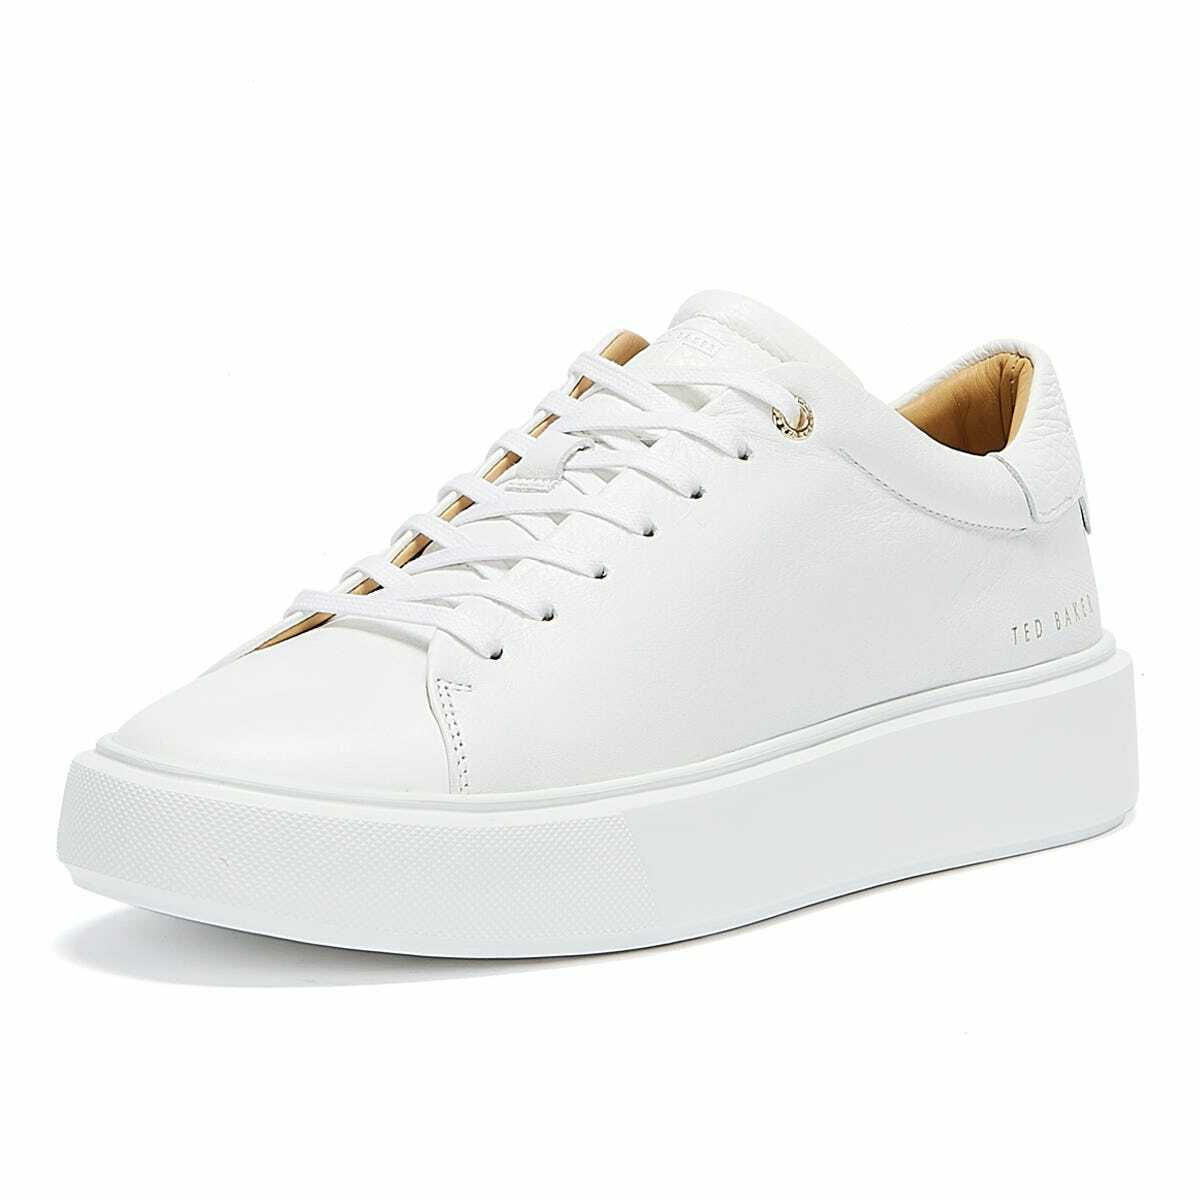 Ted Baker Yinka Womens White Trainers Casual Sneakers Running Sports Shoes